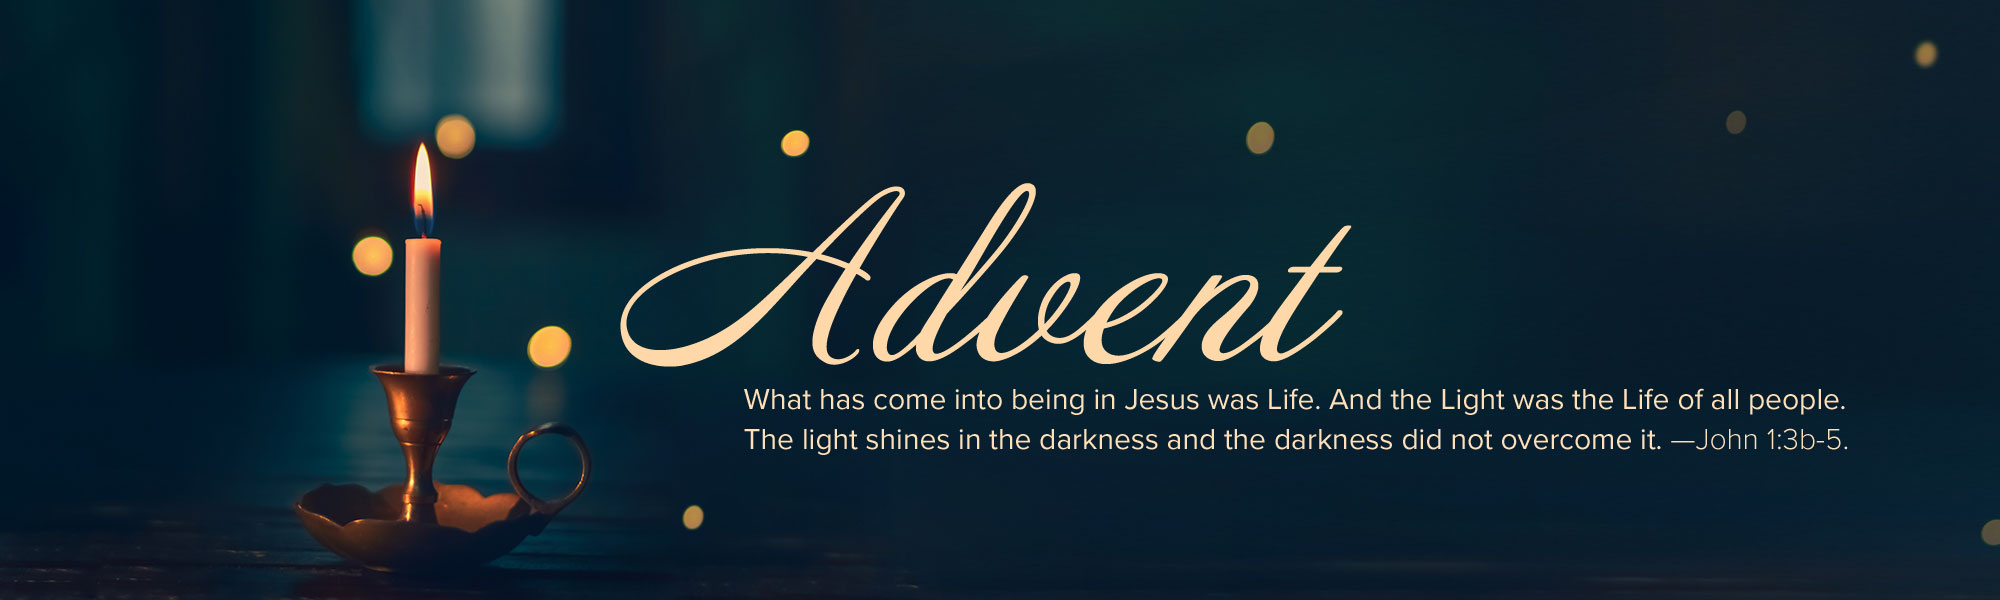 Sisters of the Holy Cross, advent Reflection 2019, Candle in the darkness